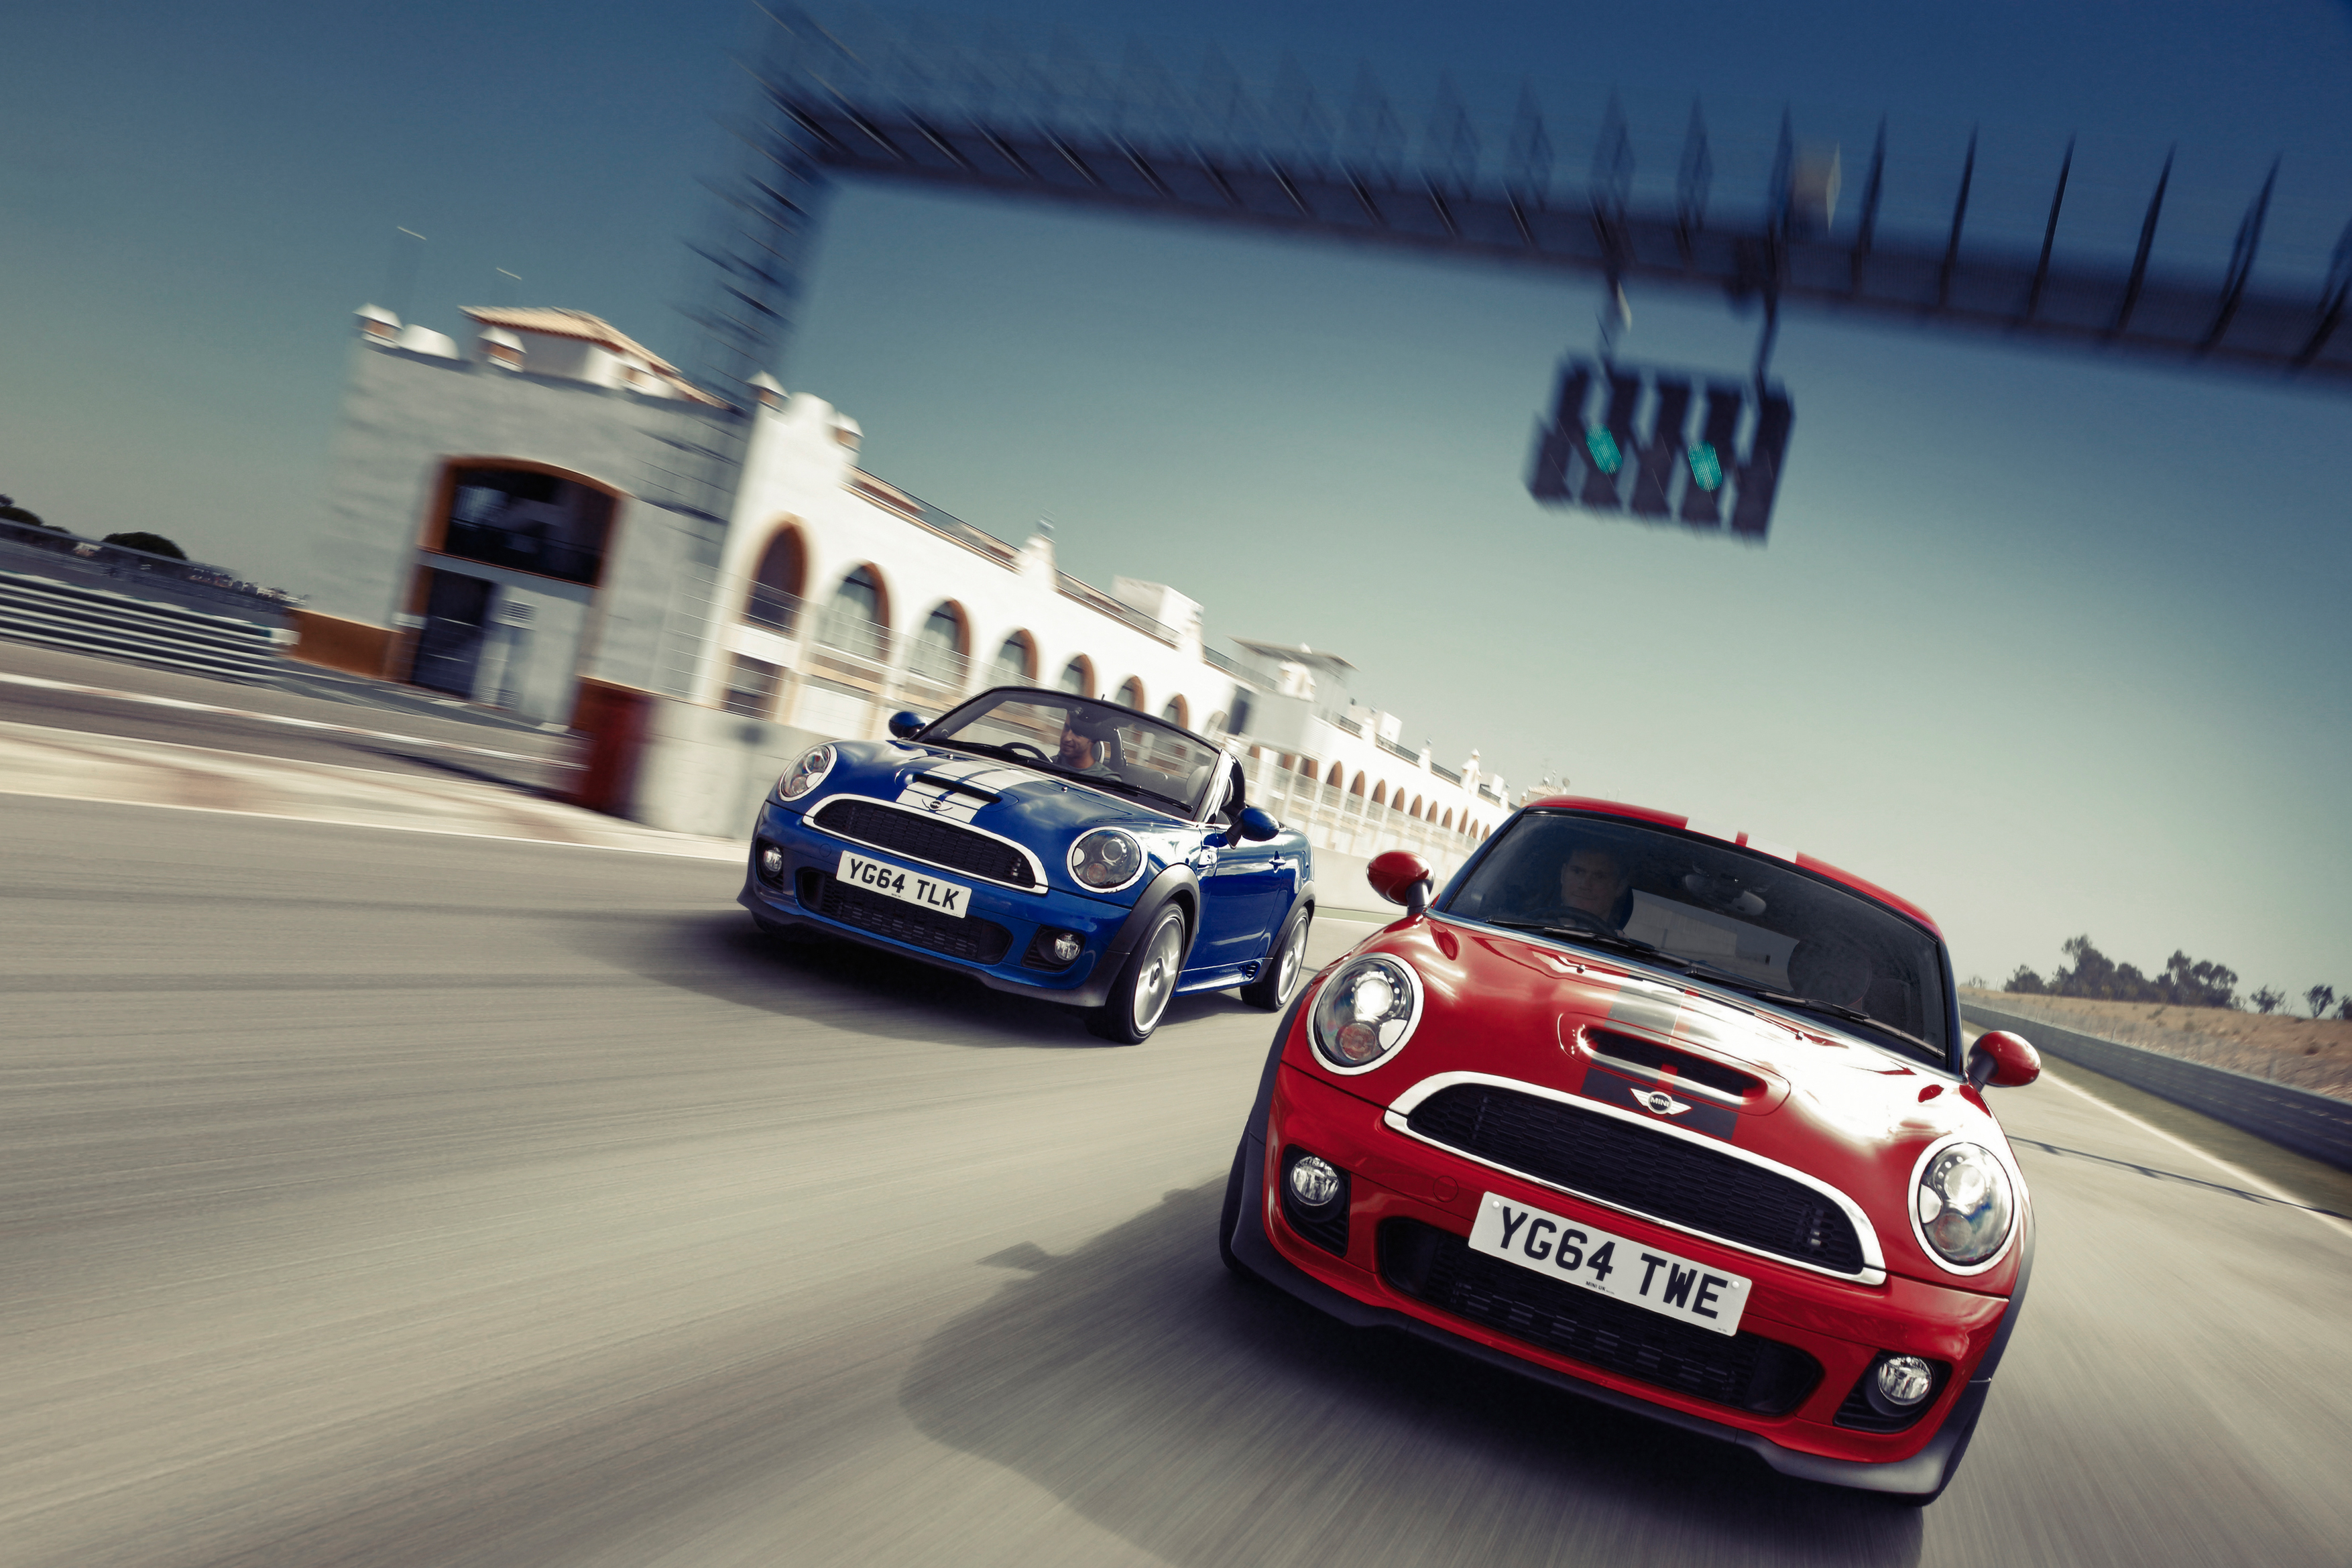 MINI Coupé e MINI Roadster sul rettilineo finale!